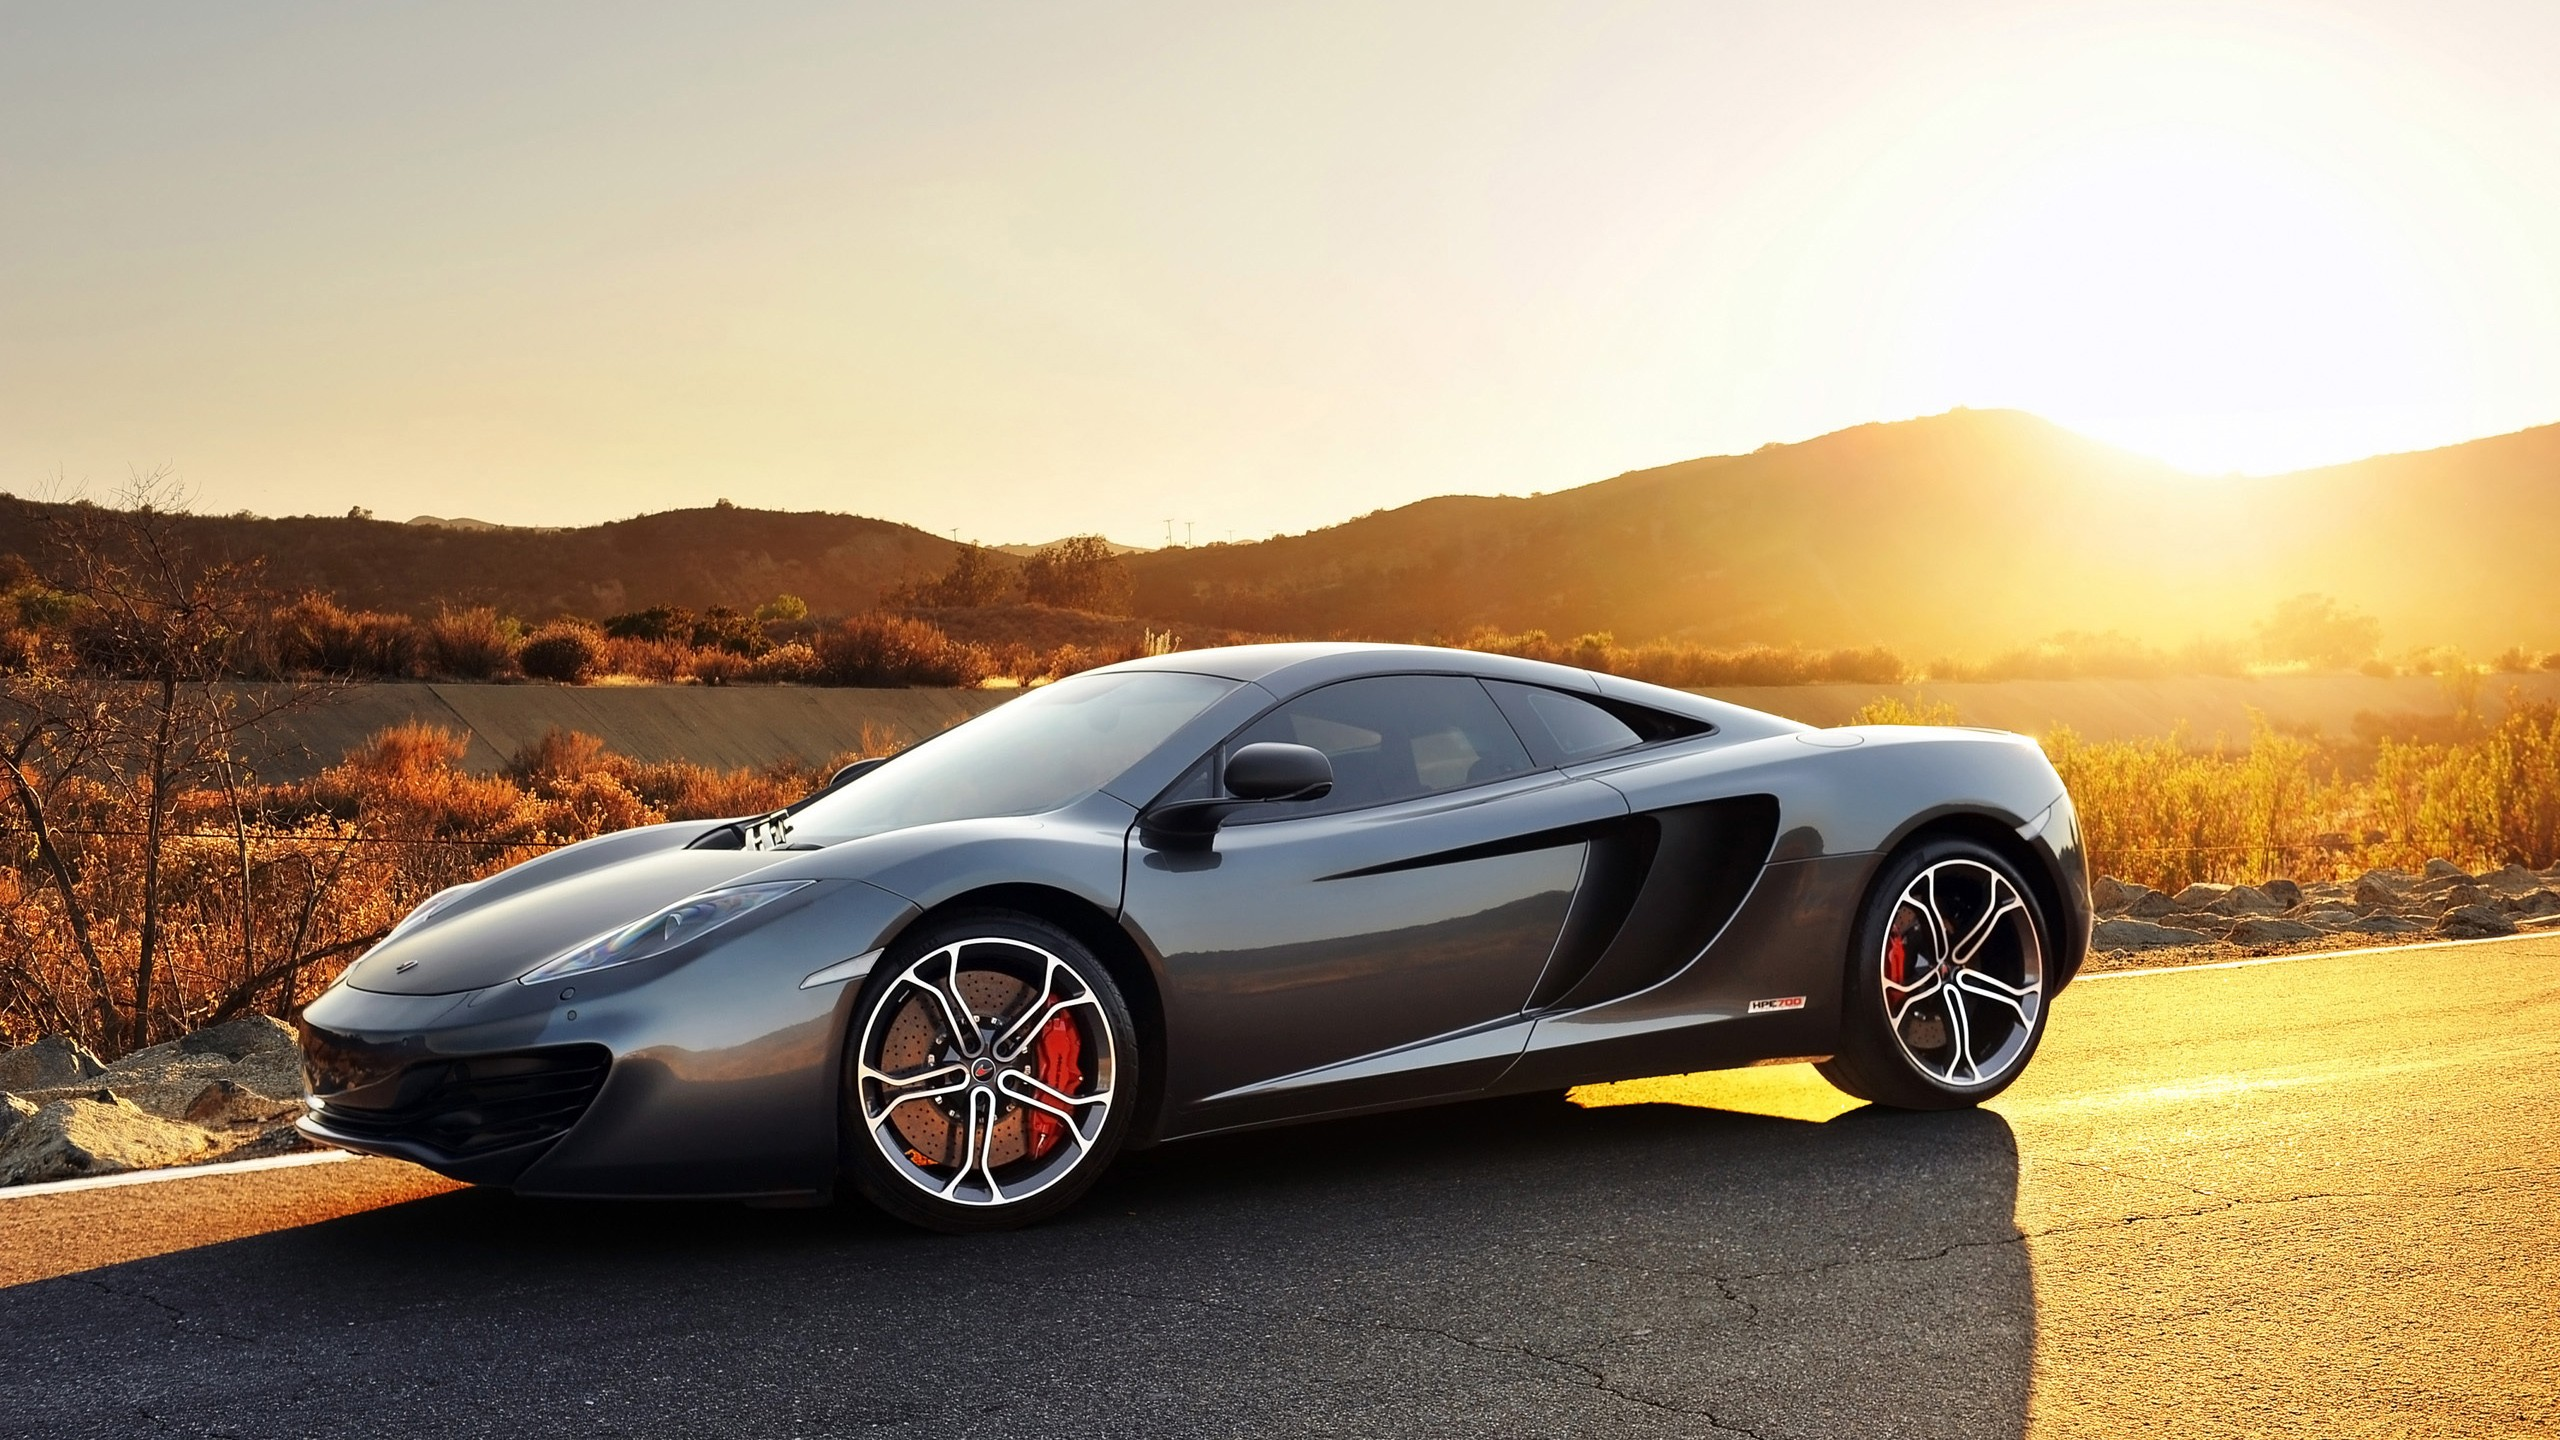 2013 Mclaren Mp4 12c Hpe700 By Hennessey Wallpaper Hd